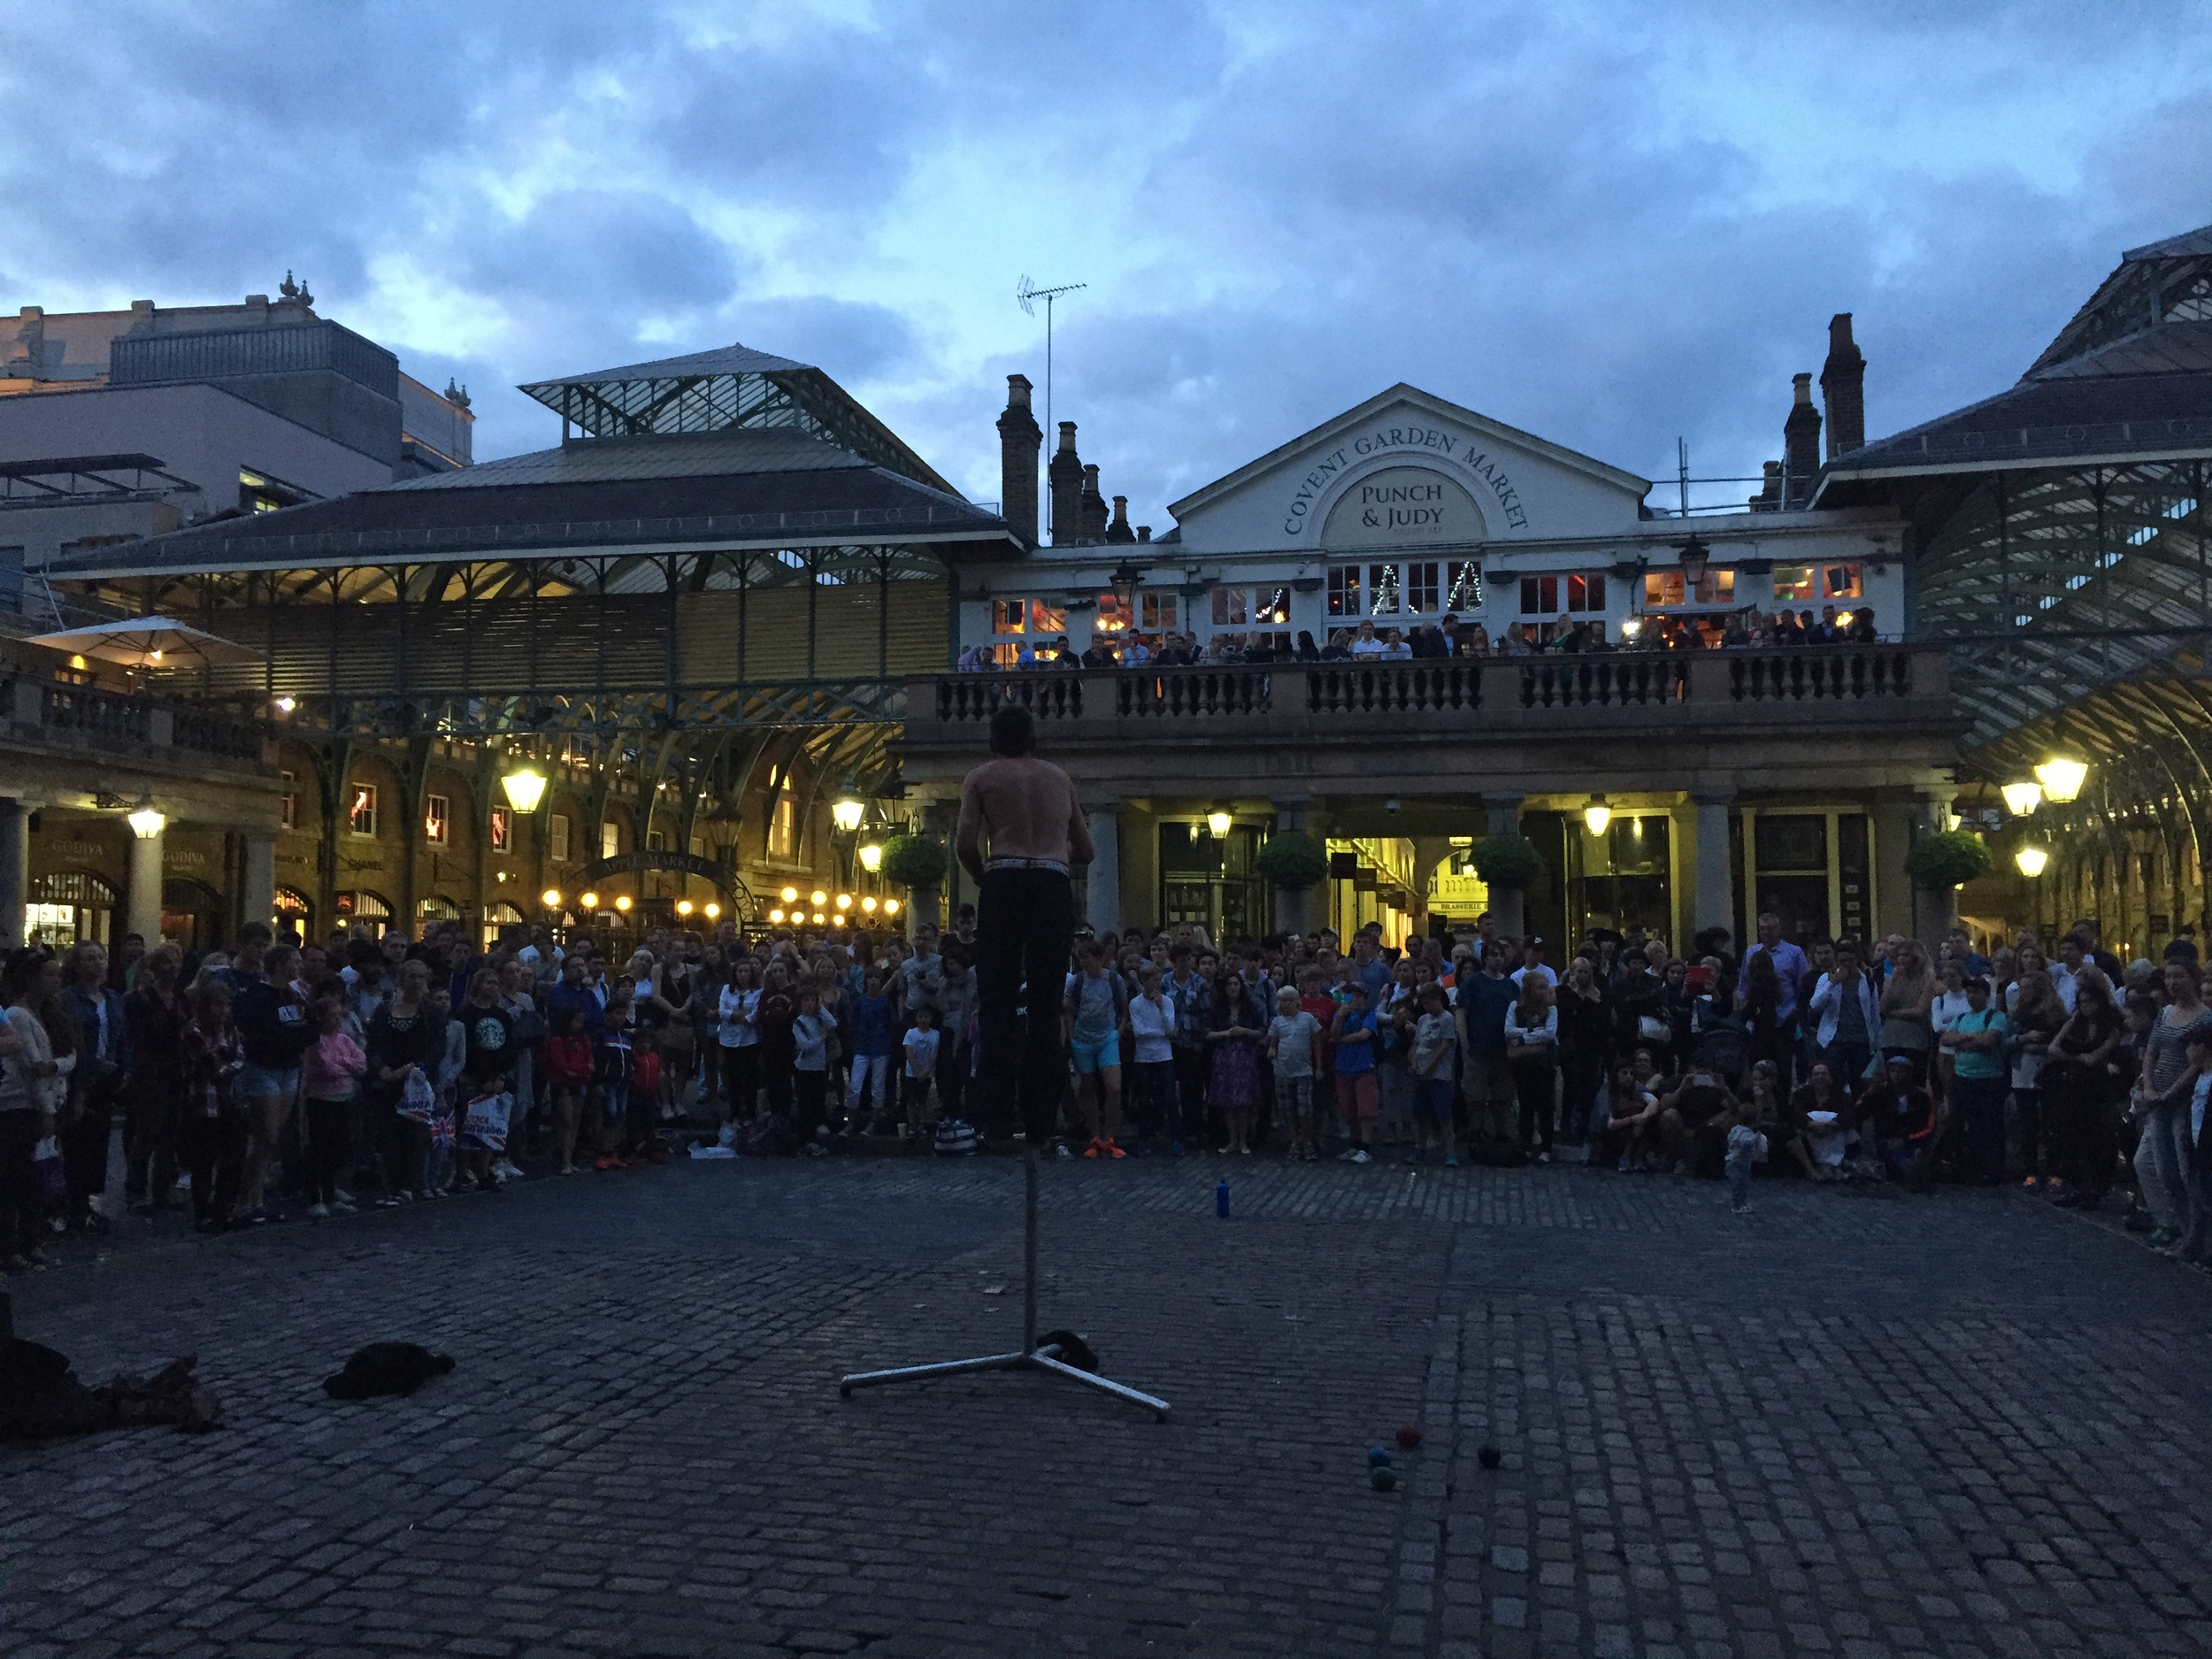 So I ended up being lured in by a street performance while exploring the elegance of Covent Garden!